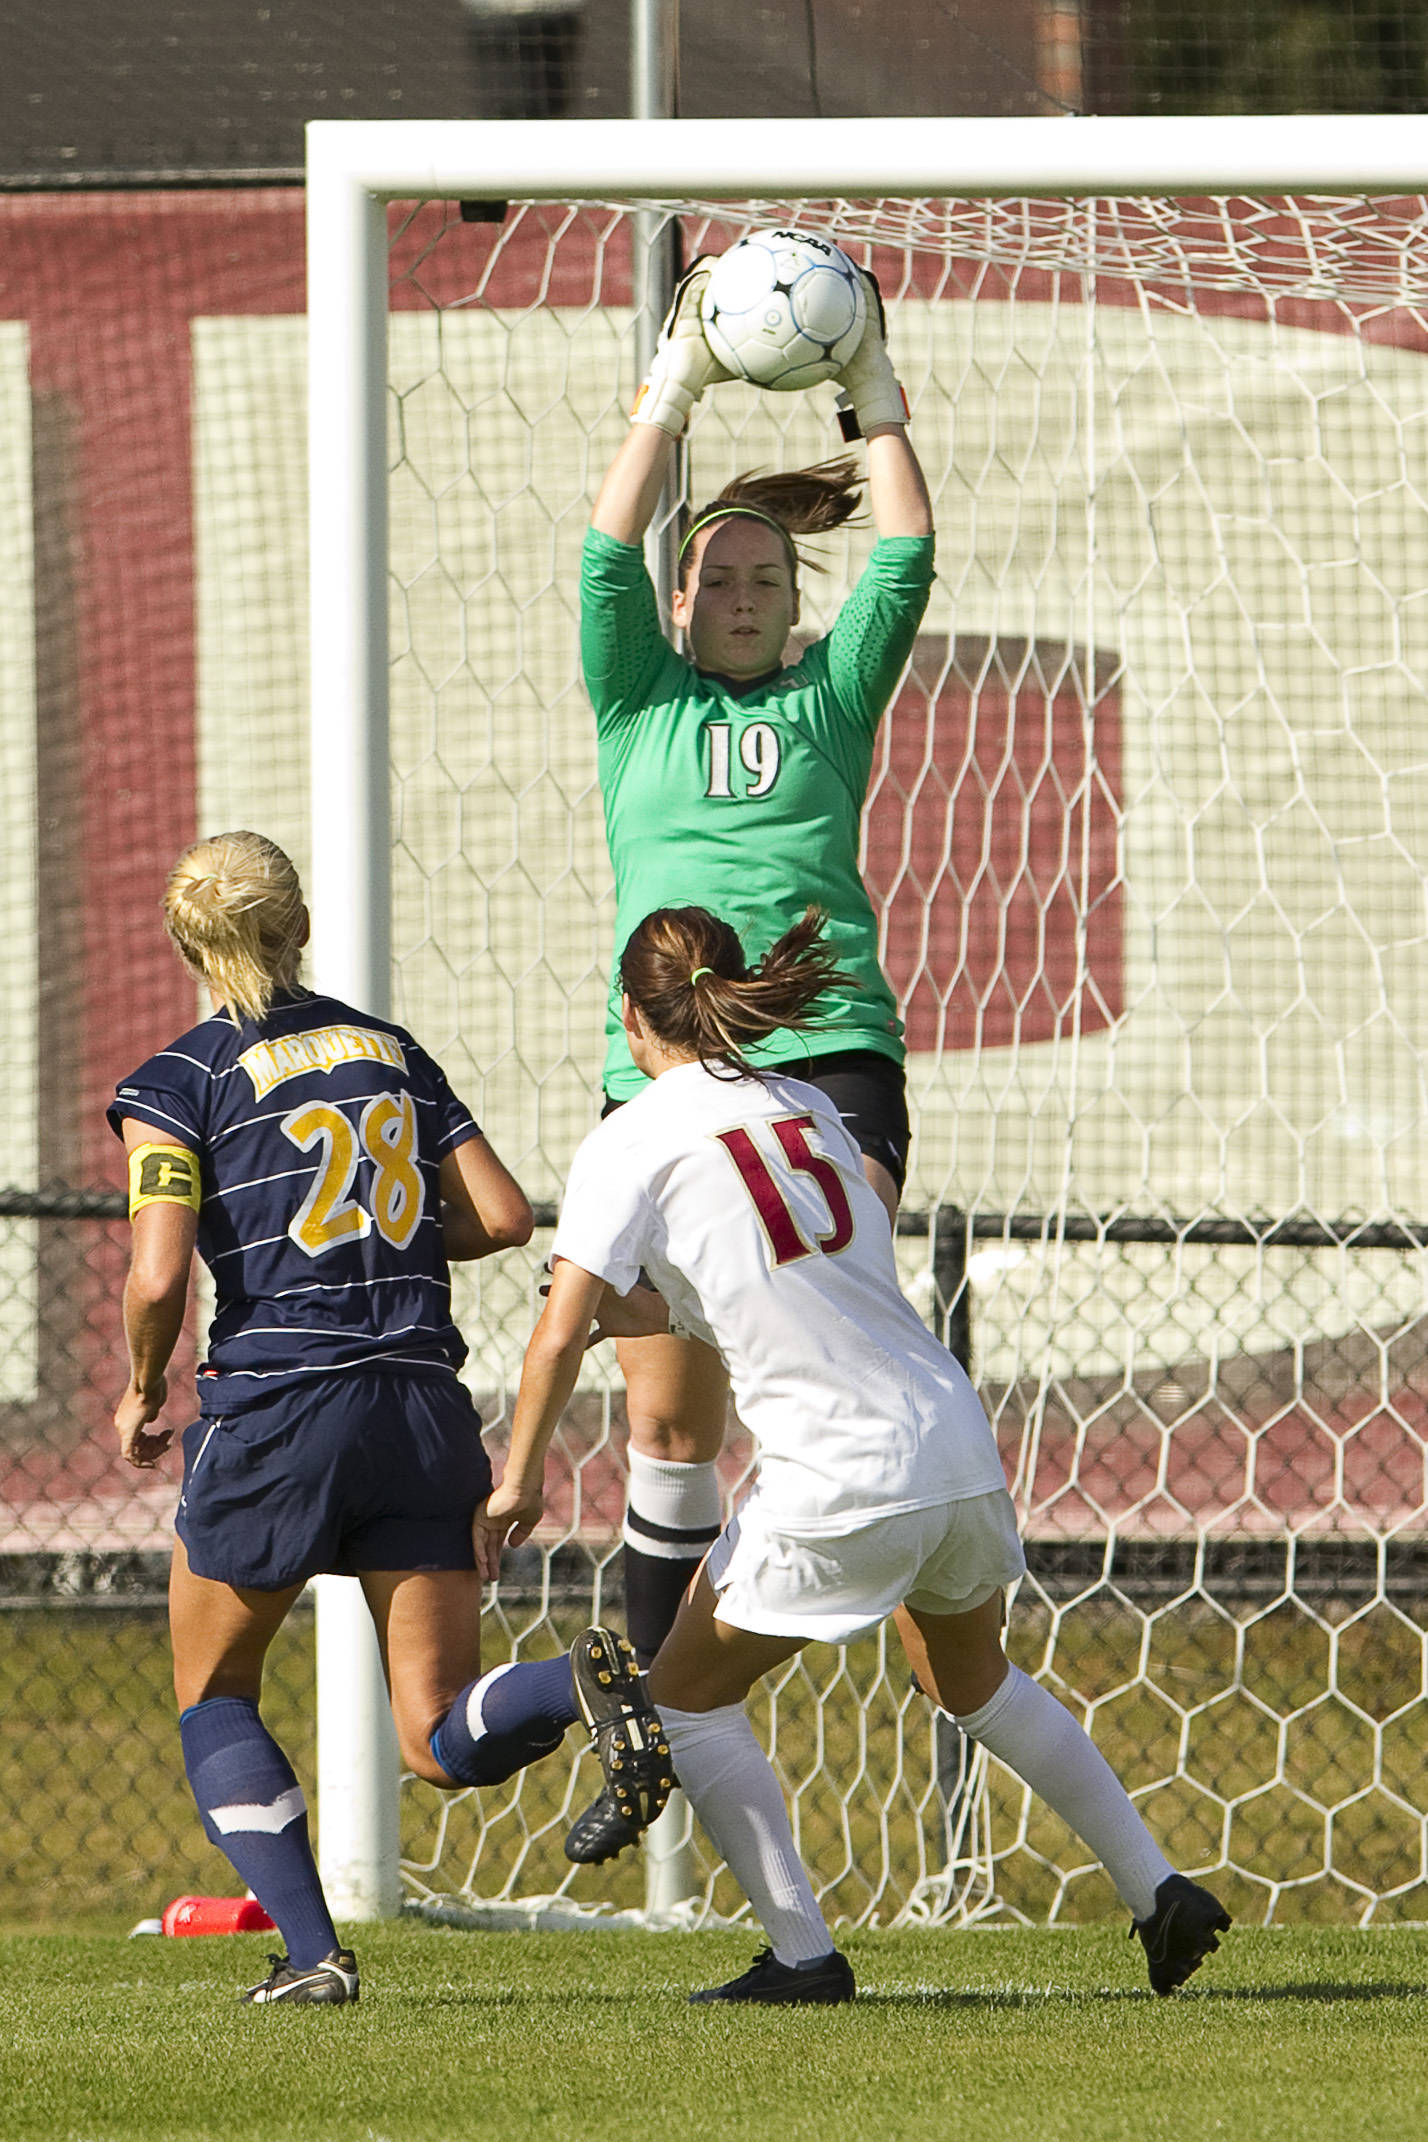 FSU Keeper jumps to save a shot from a Marquette offender.